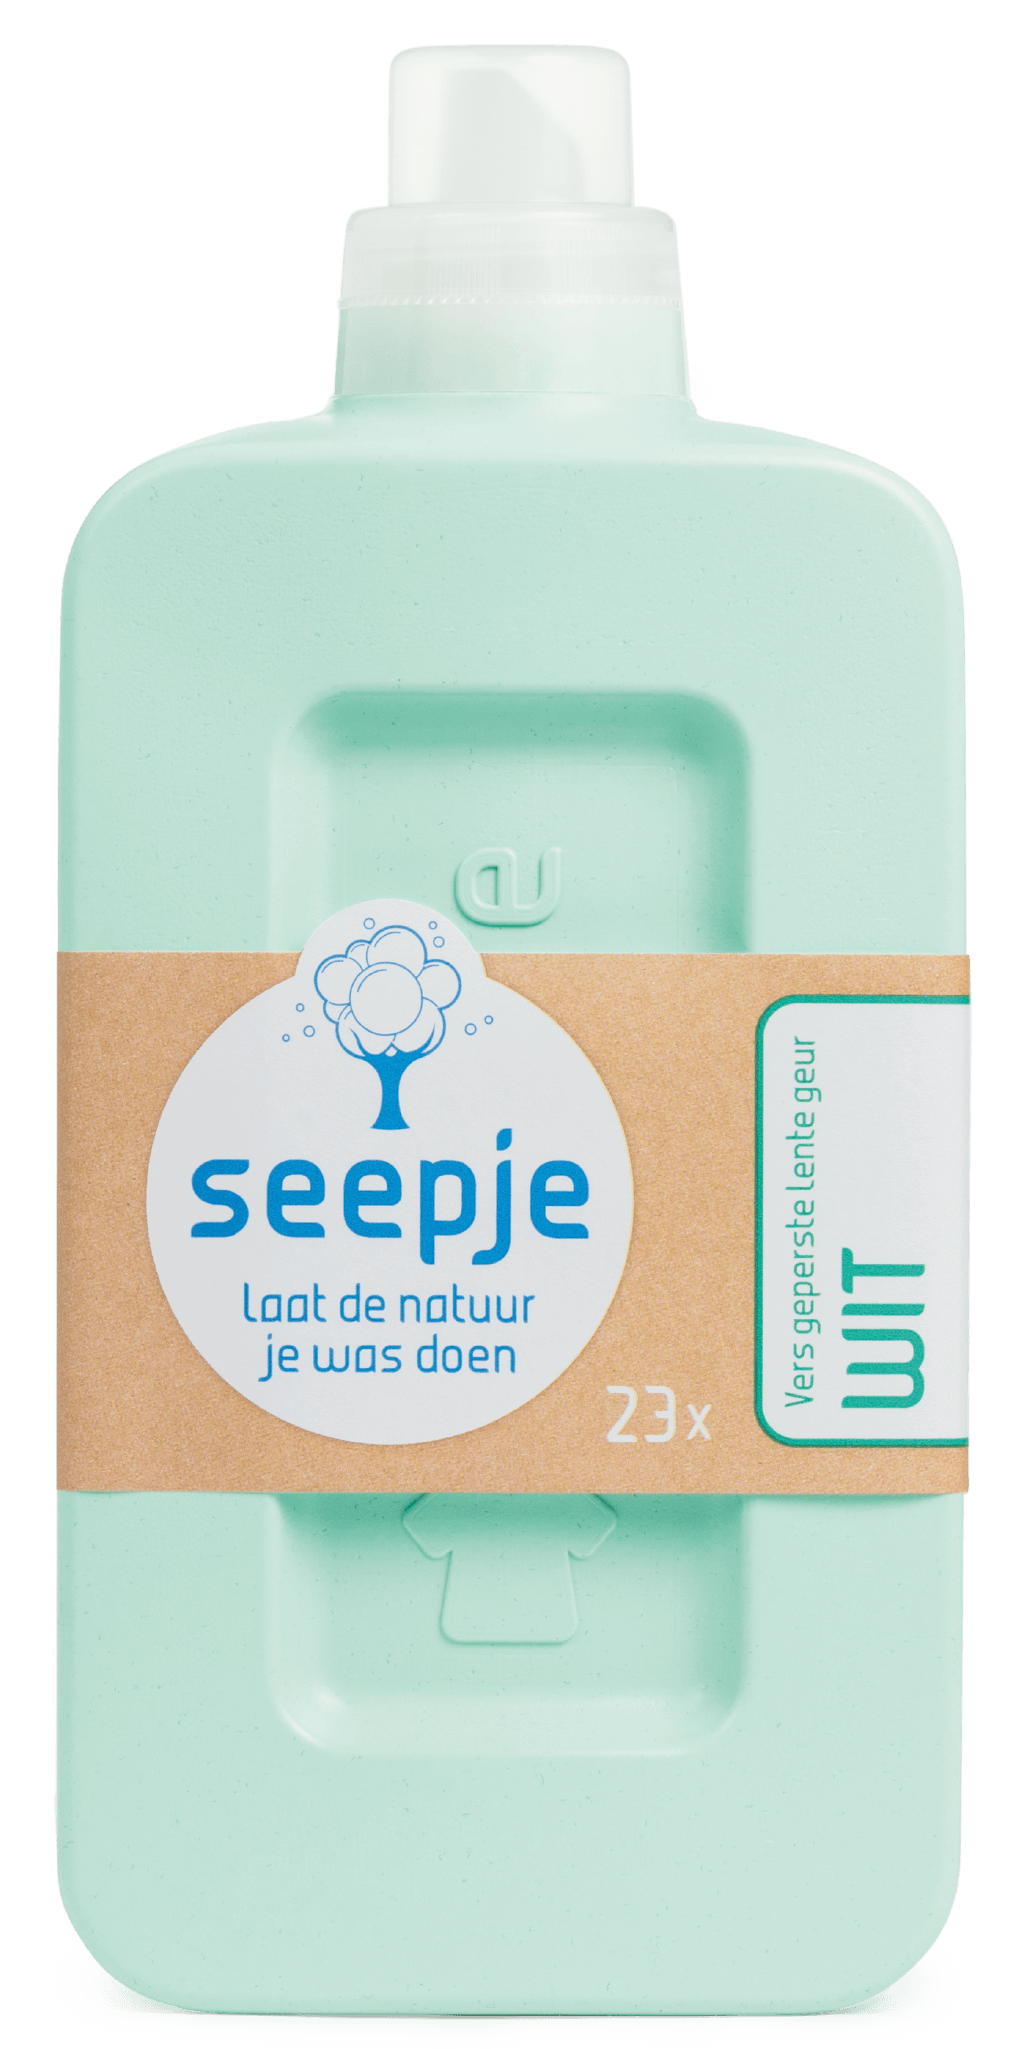 Seepje Freshly squeezed spring scent white